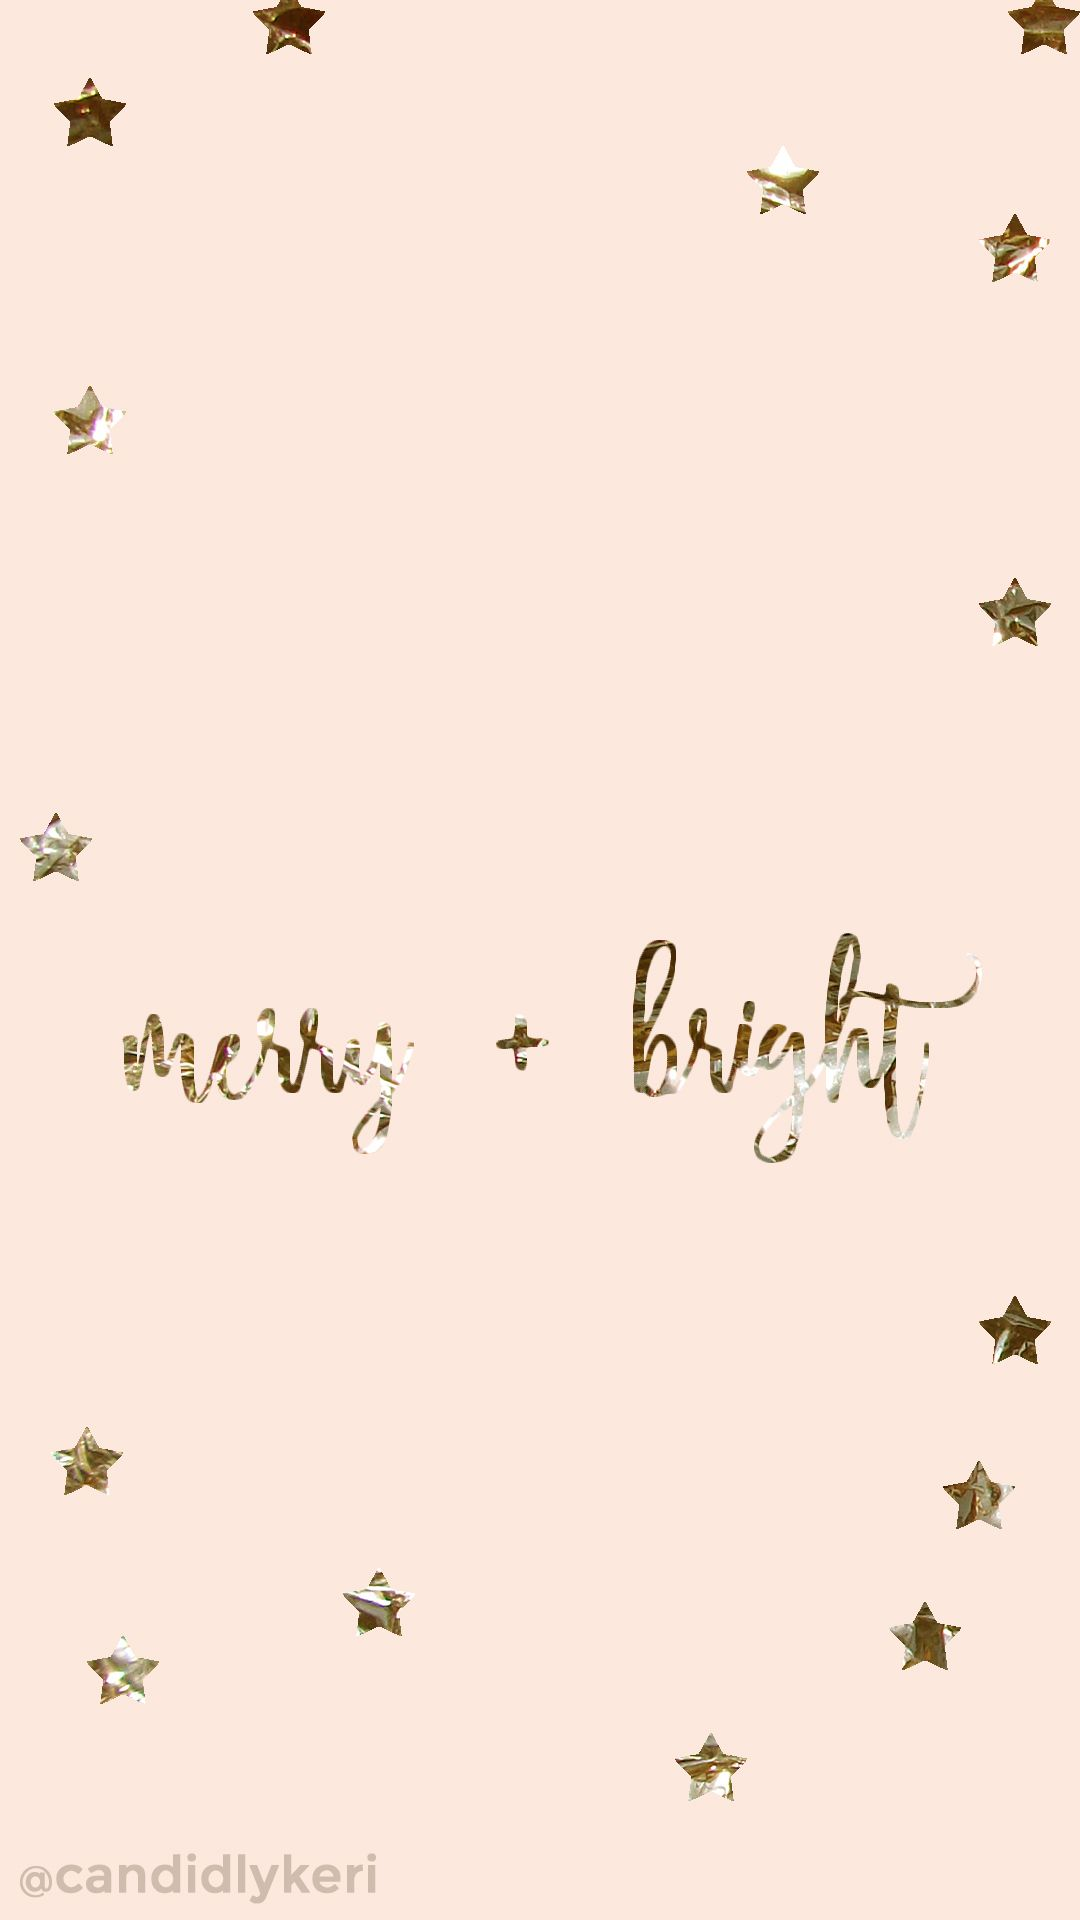 Merry and Bright gold foil pink stars background wallpaper you can 1080x1920